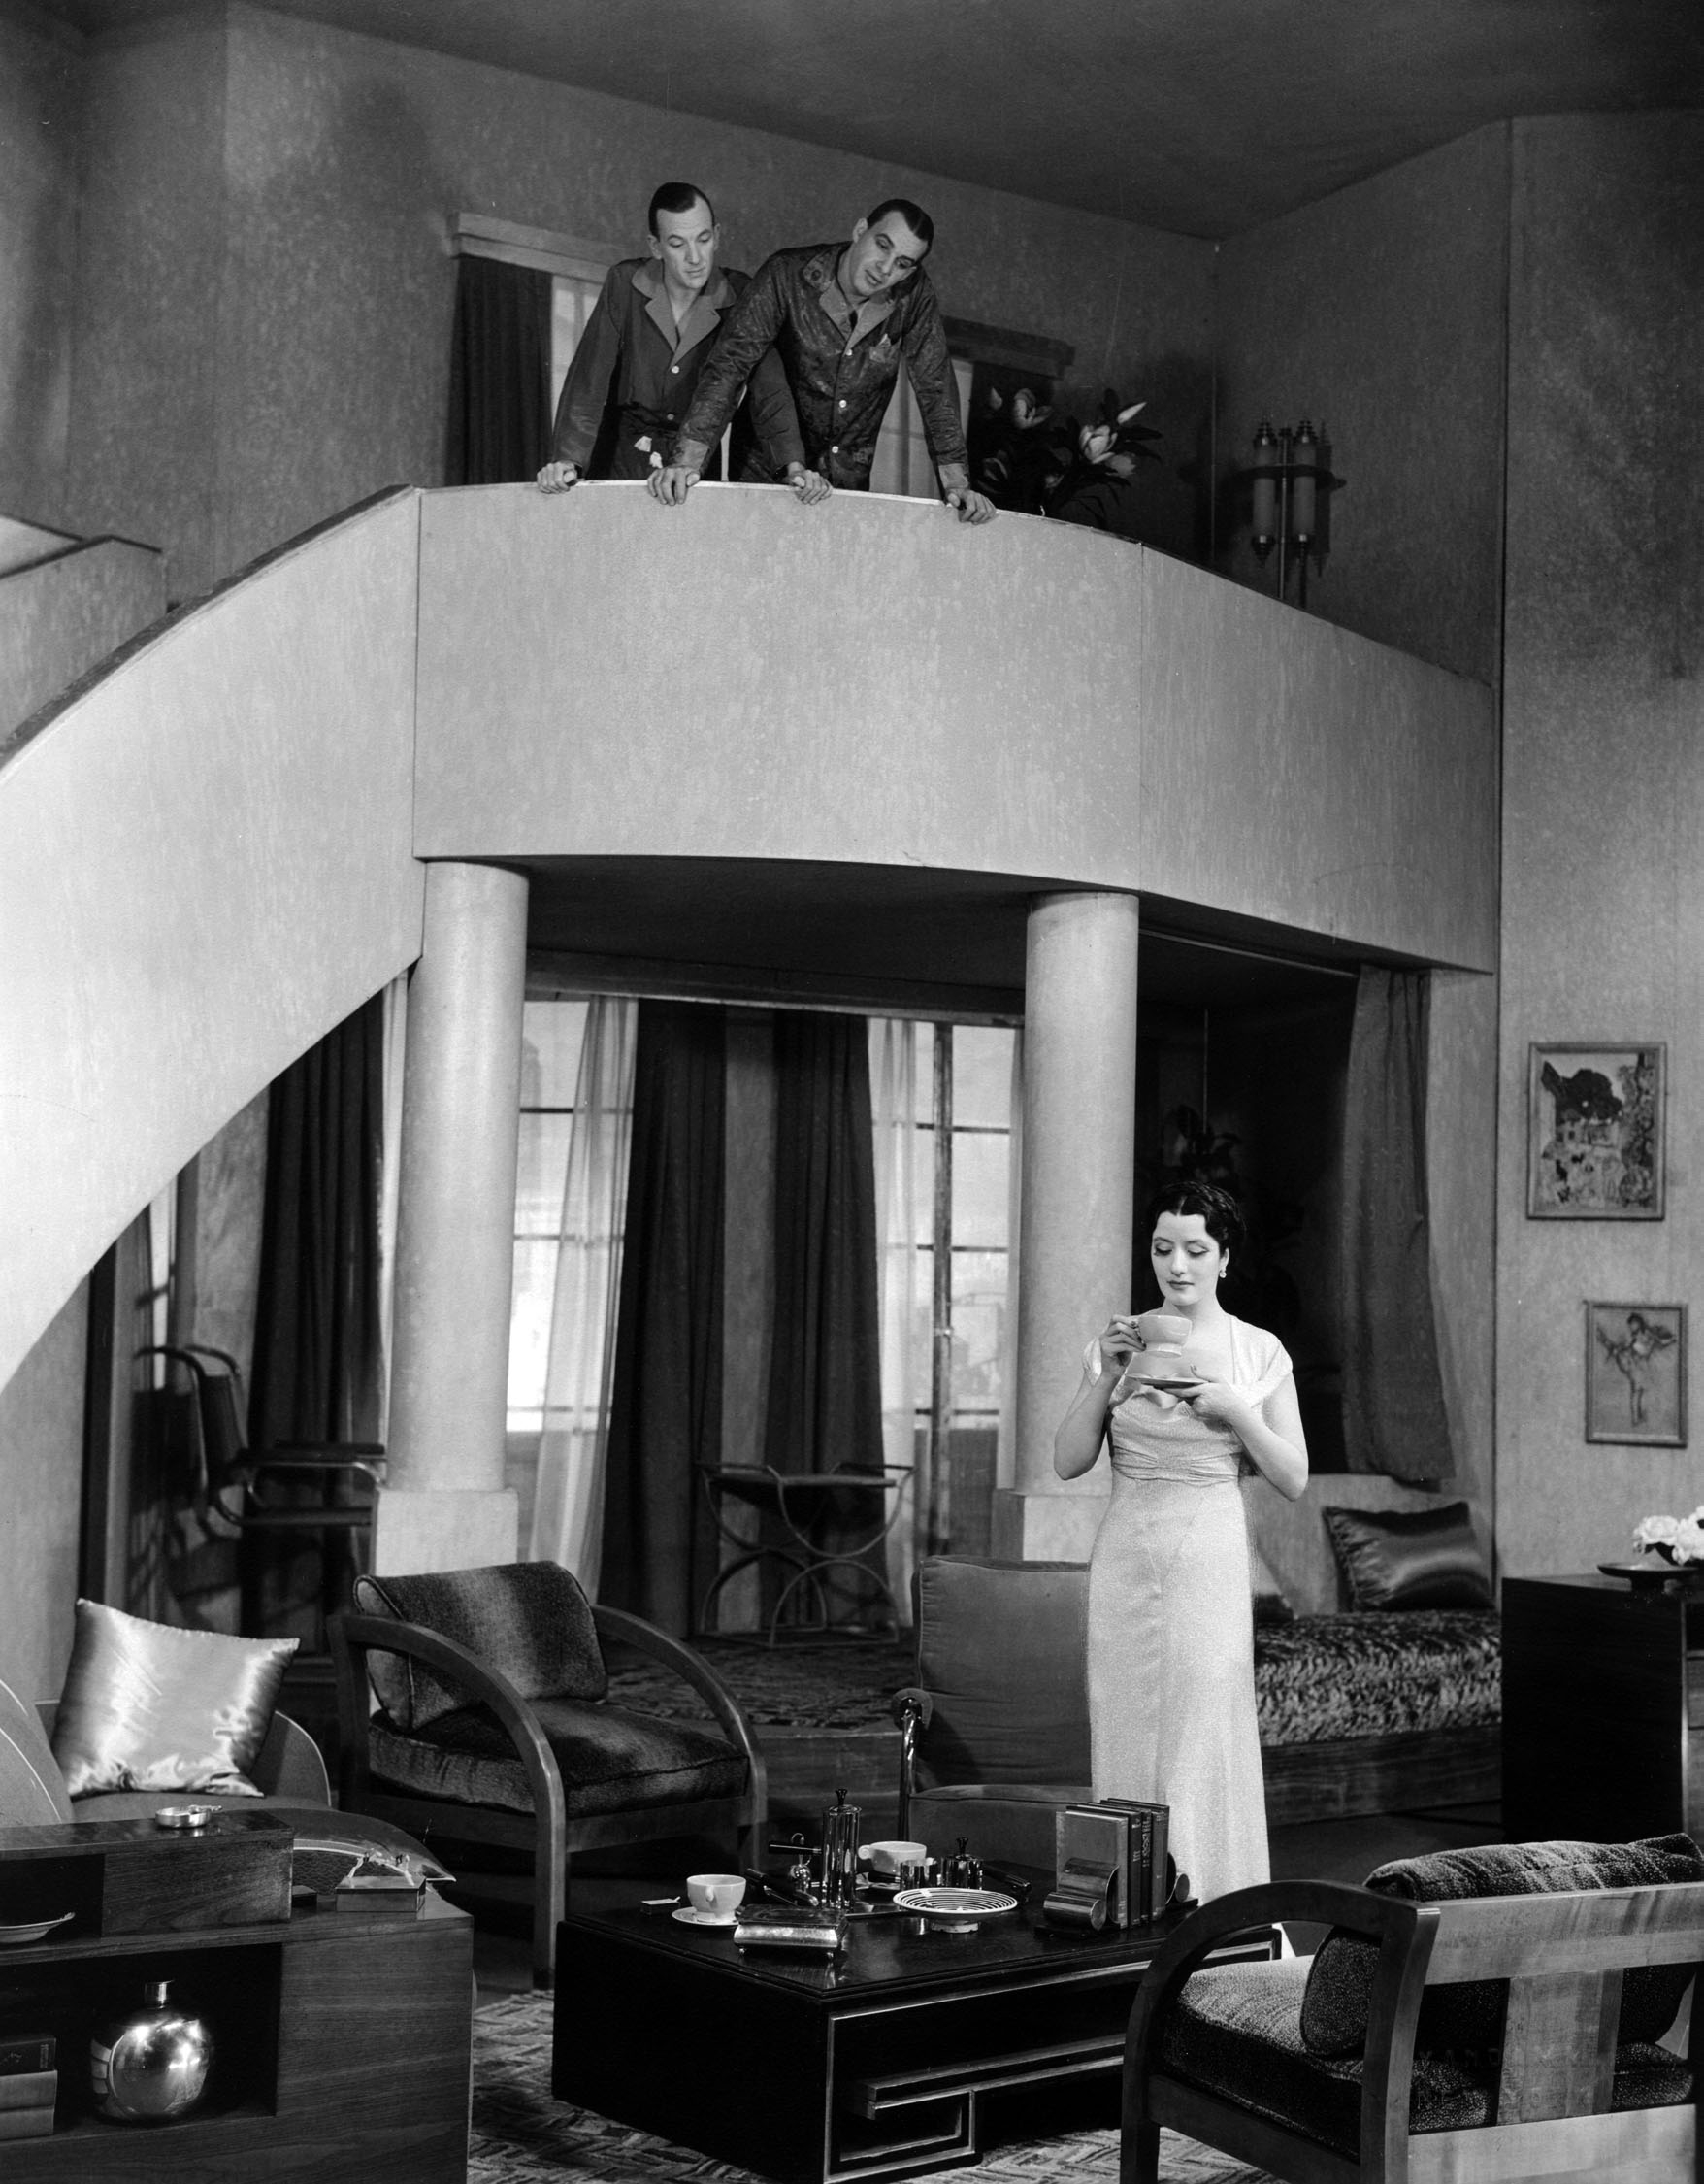 Noël Coward, Alfred Lunt and Lynn Fontanne in Design for Living.